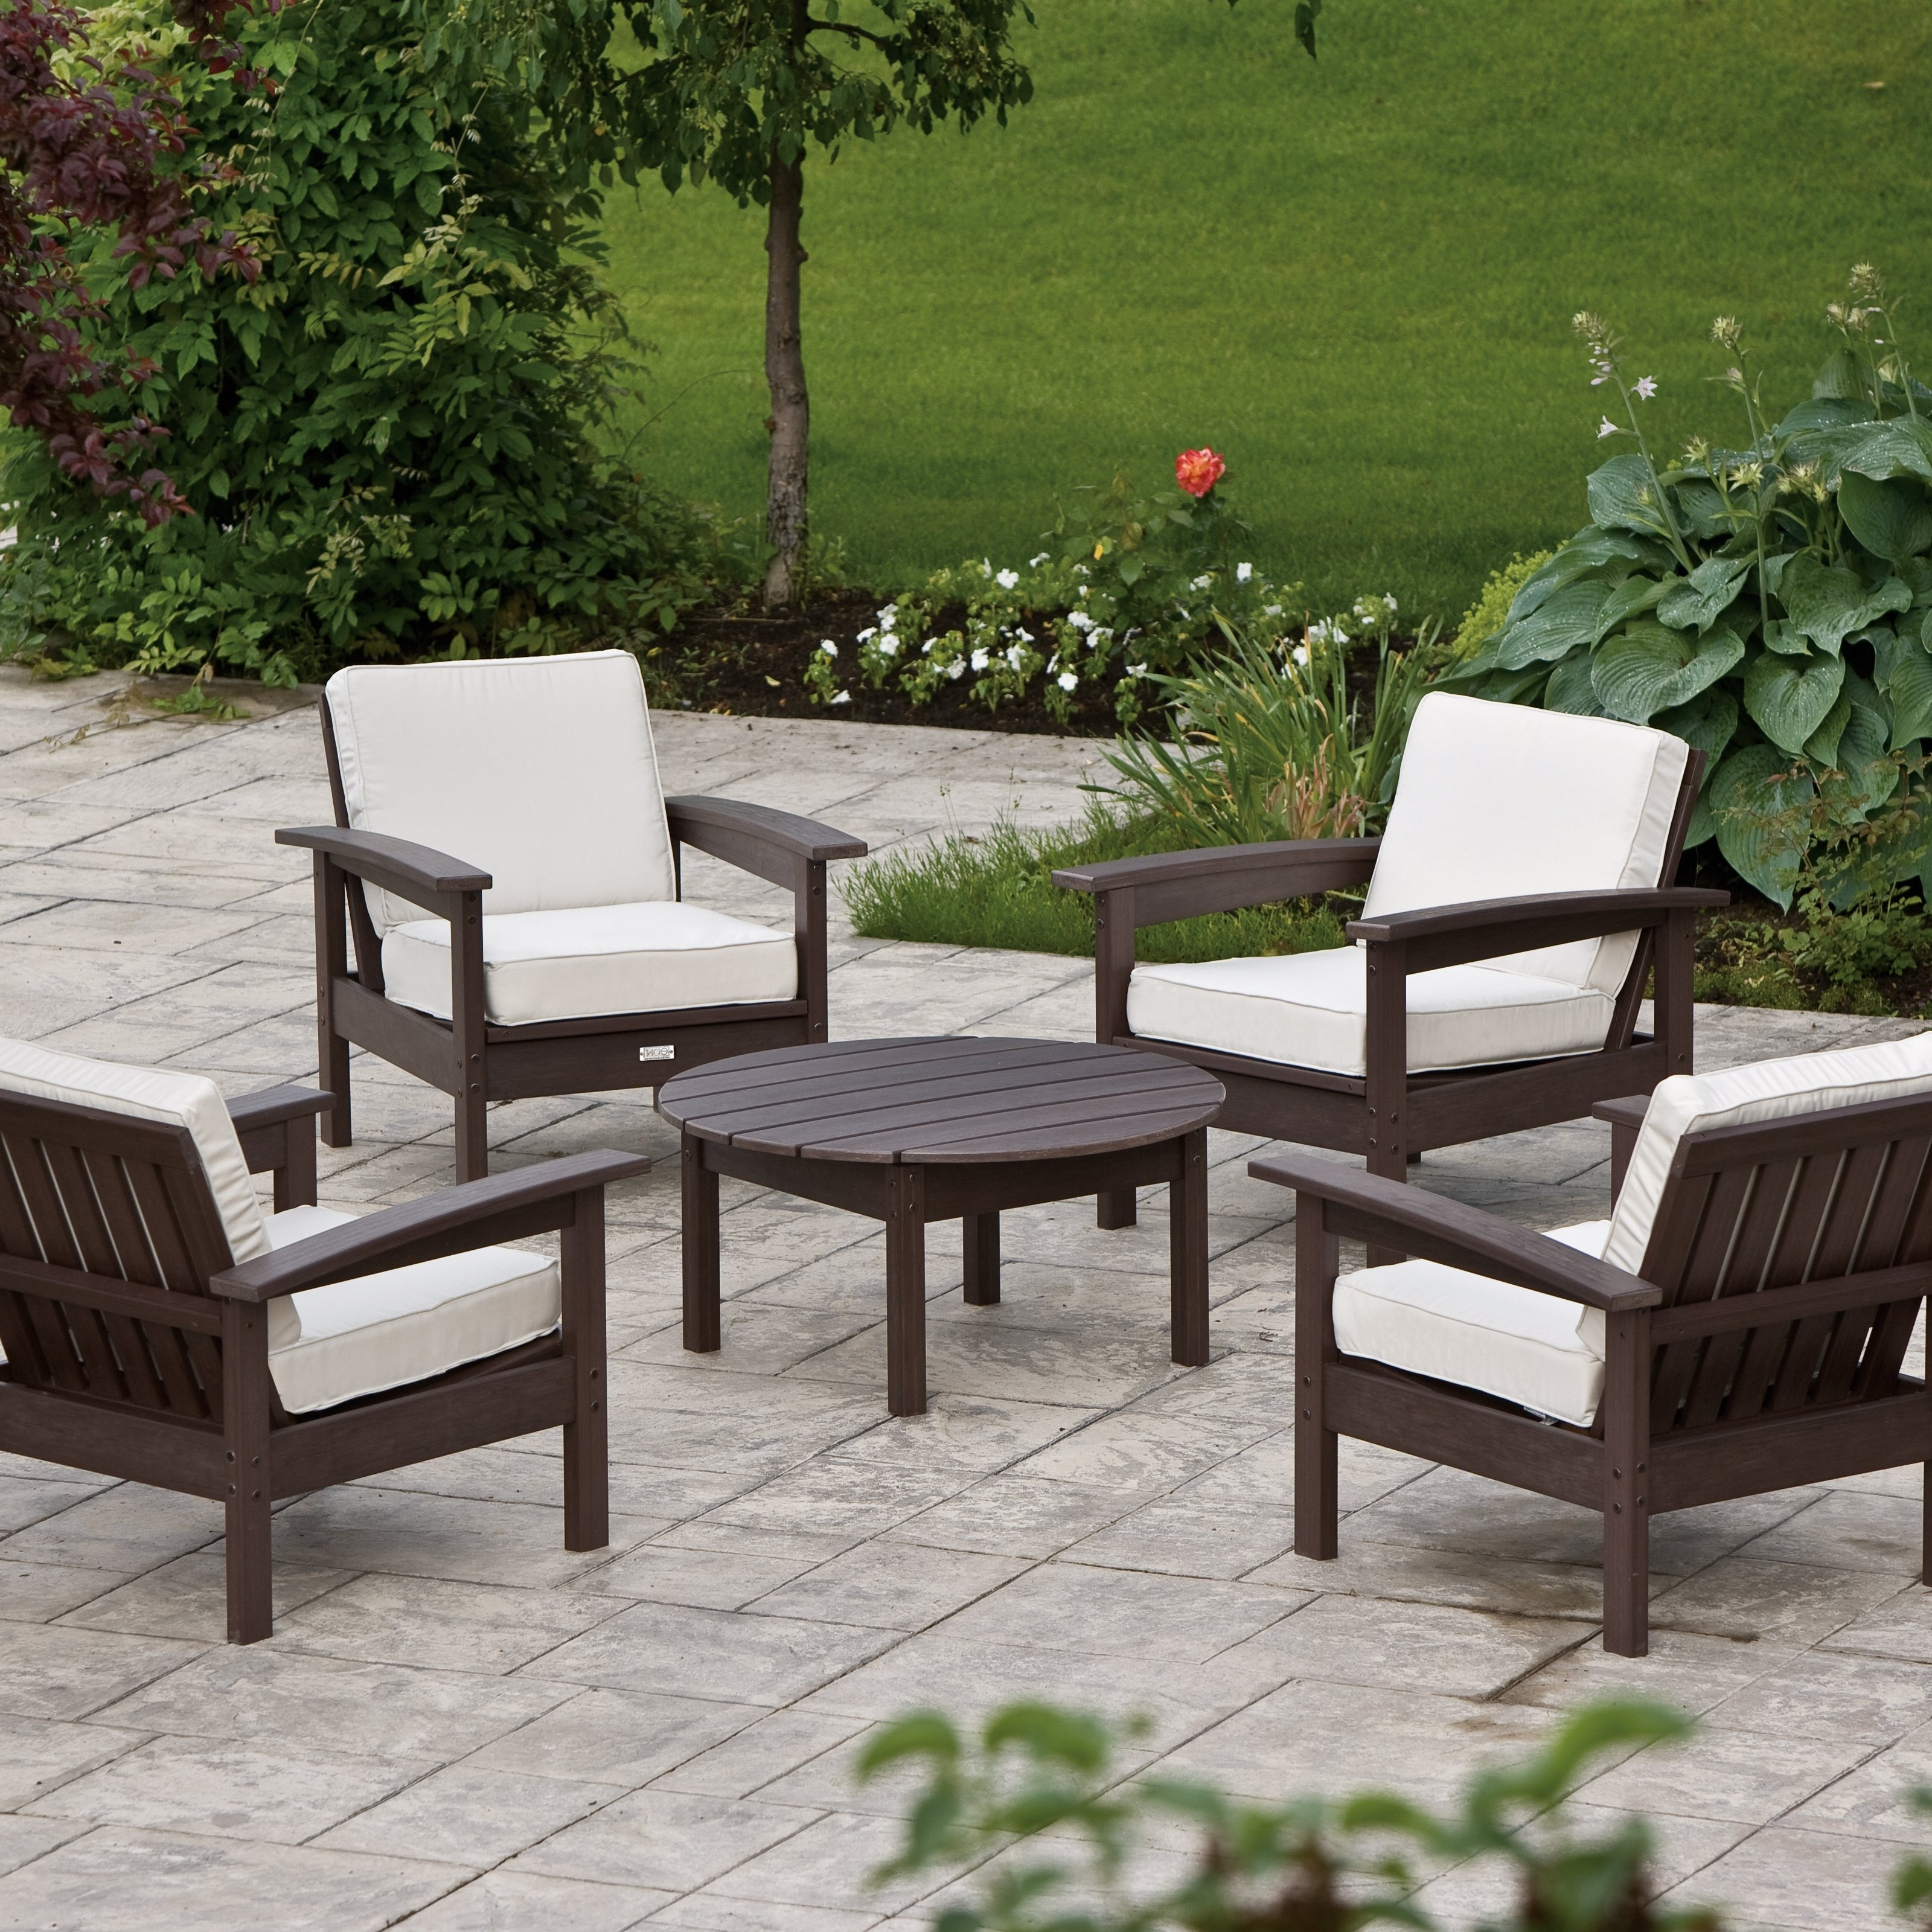 Patio Conversation Sets Without Cushions Regarding 2018 Outdoor Patio Furniture Without Cushions – Furniture Designs (View 3 of 15)